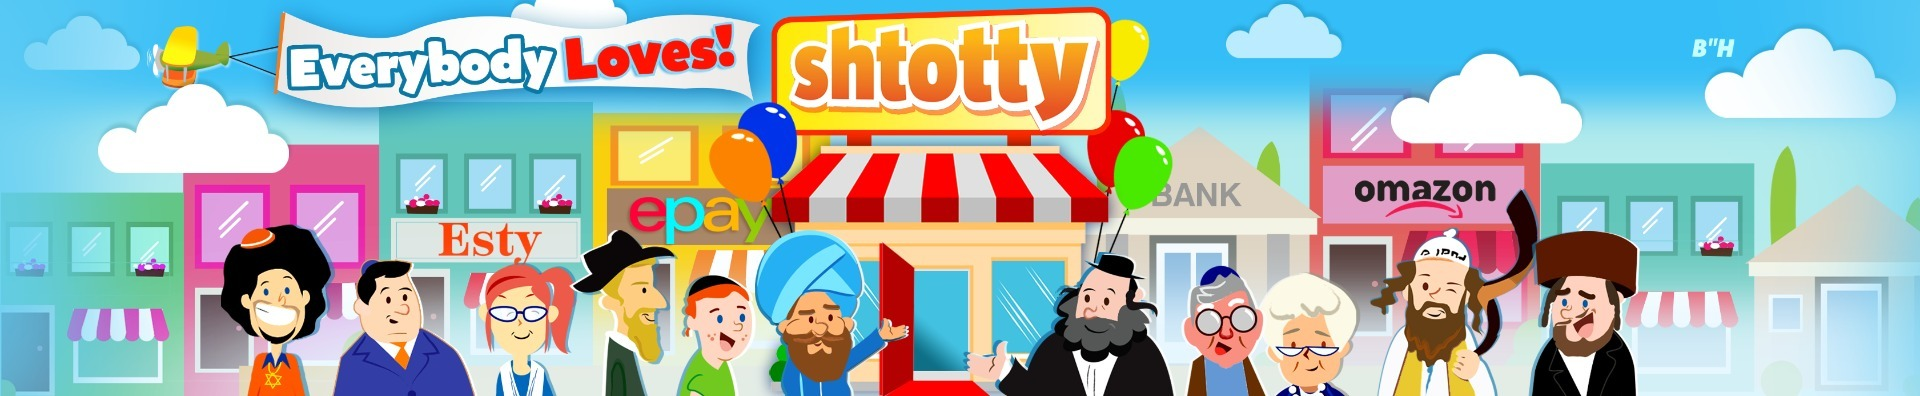 shtotty (@shtotty) Cover Image